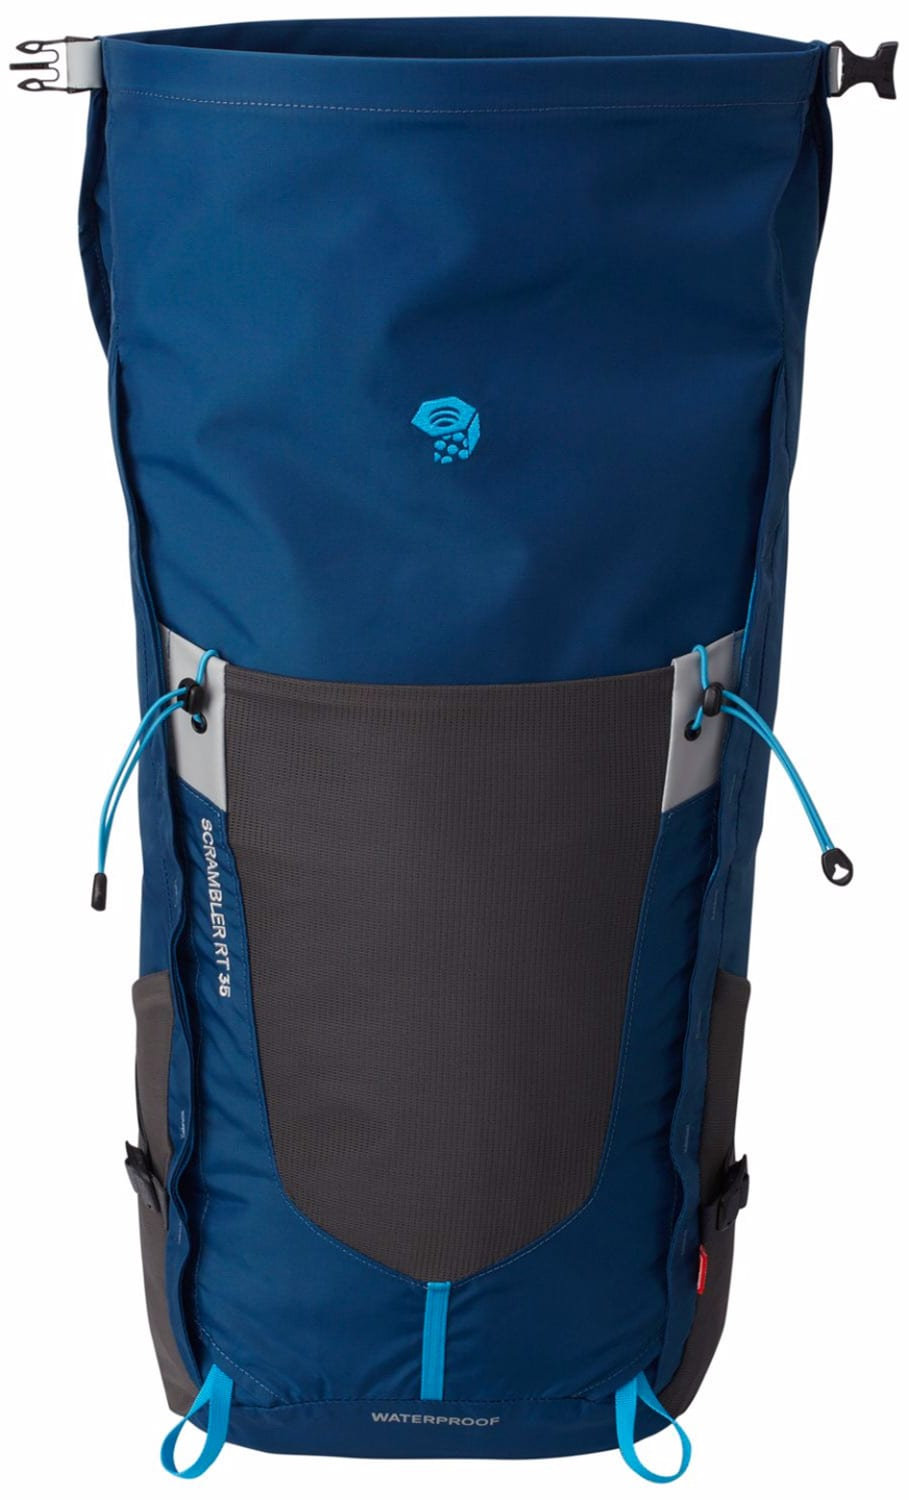 681902af2a Mountain Hardwear Scrambler RT 35 OutDry Backpack - thumbnail 3